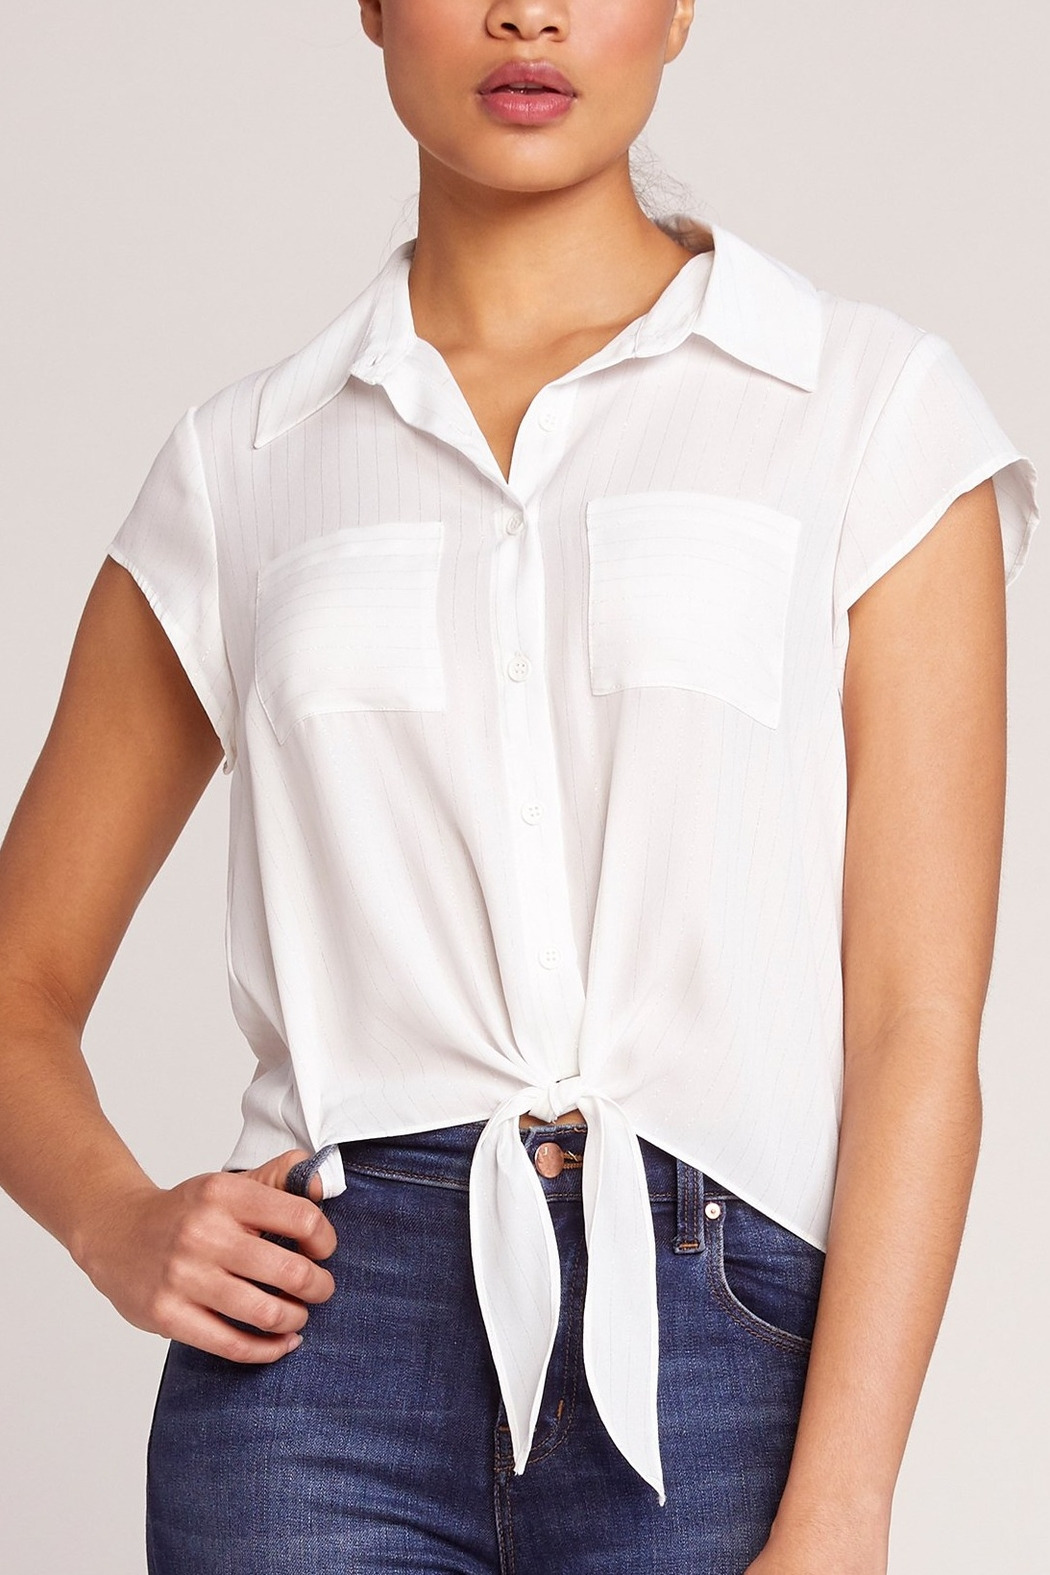 JACK DAKOTA All Lined Up Tie Blouse - Main Image